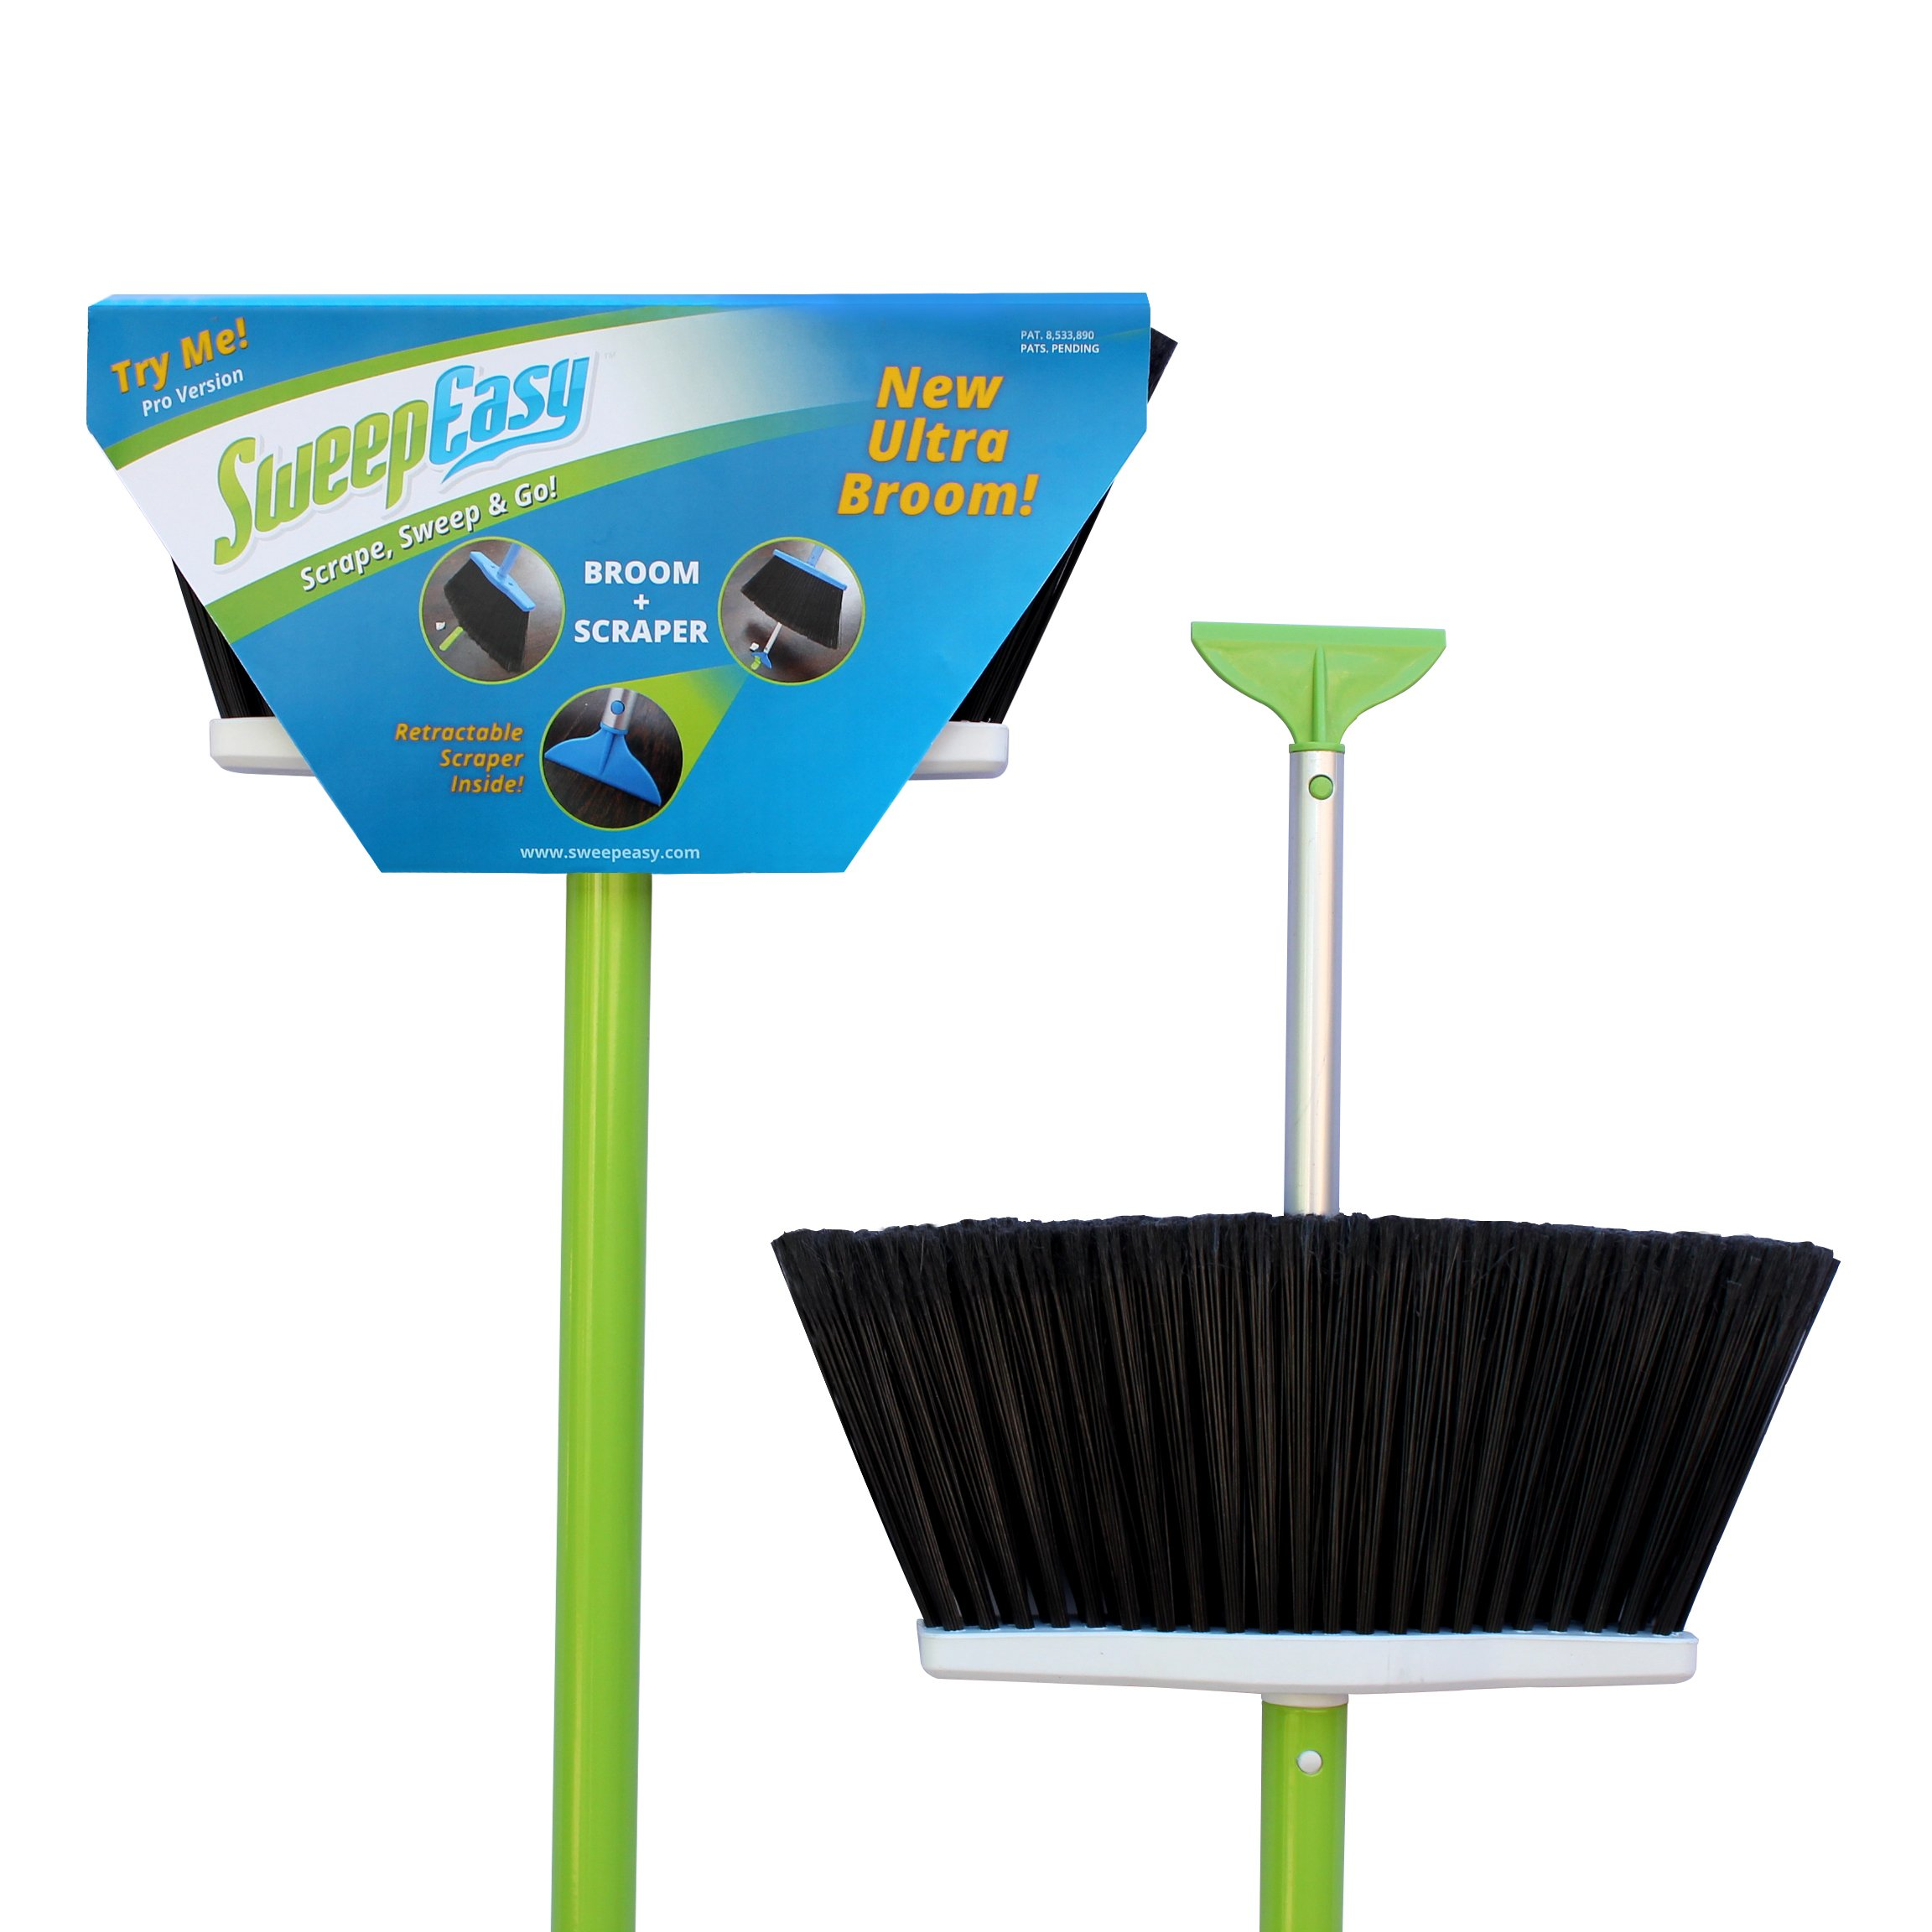 SweepEasy NEW Broom As Seen On Shark Tank. For Indoor and Outdoor Use Retractable Handle With Scraper Making Sweeping Easy With